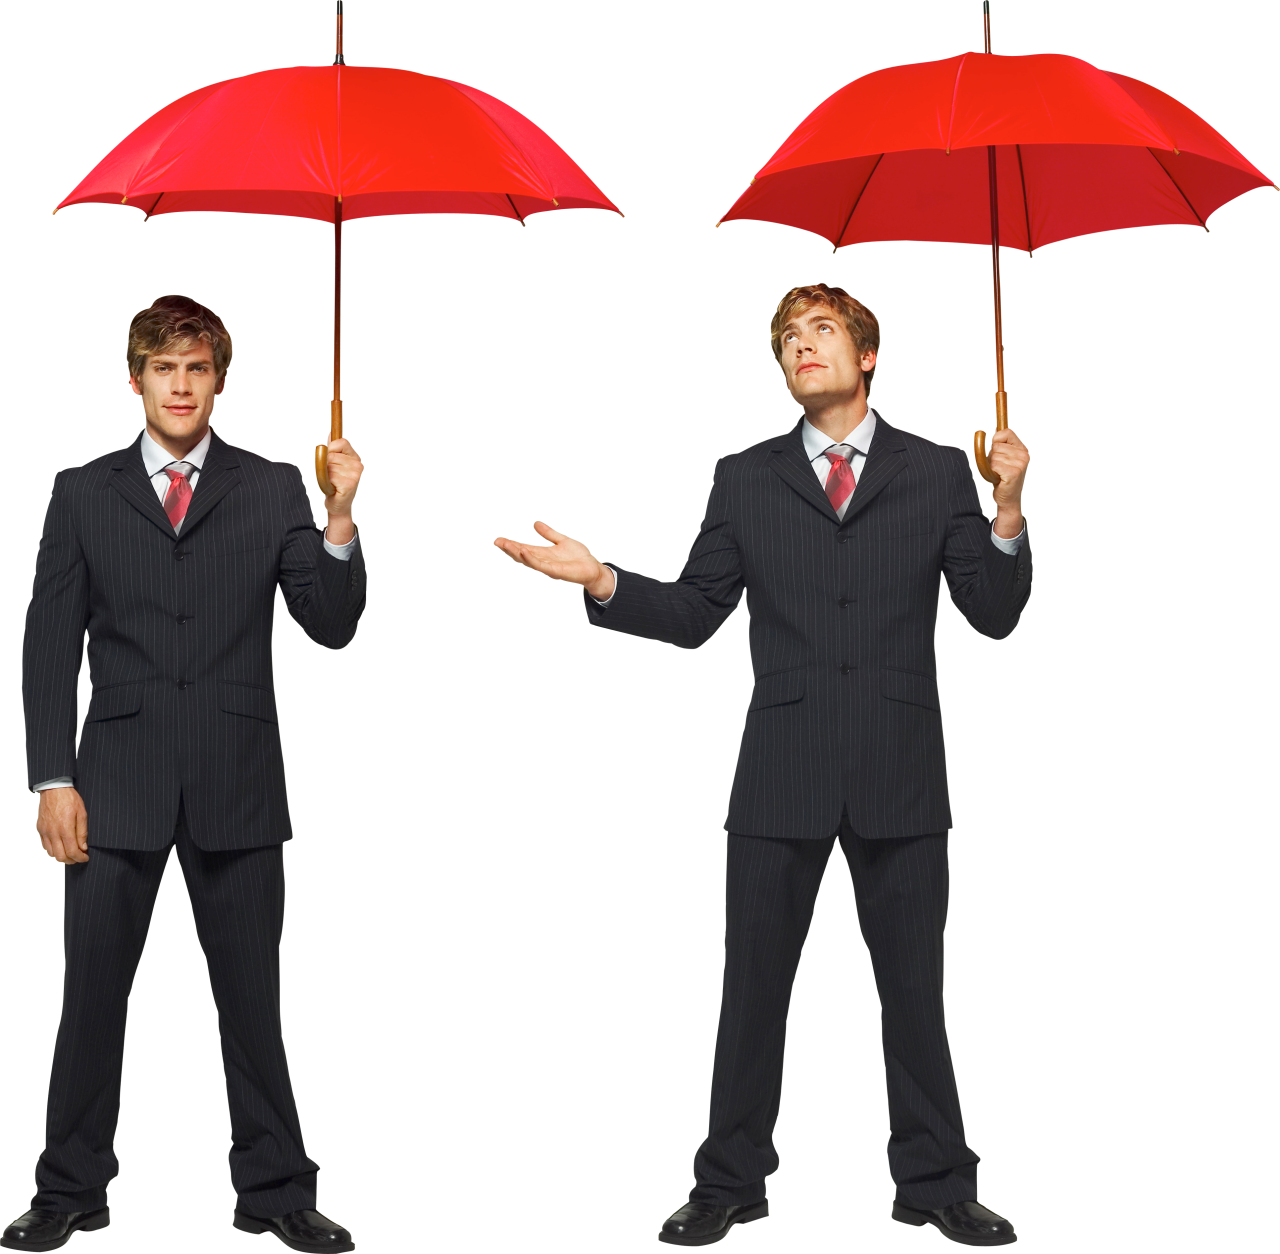 Two Male Twins Businessman Under Red Umbrellas PNG Image